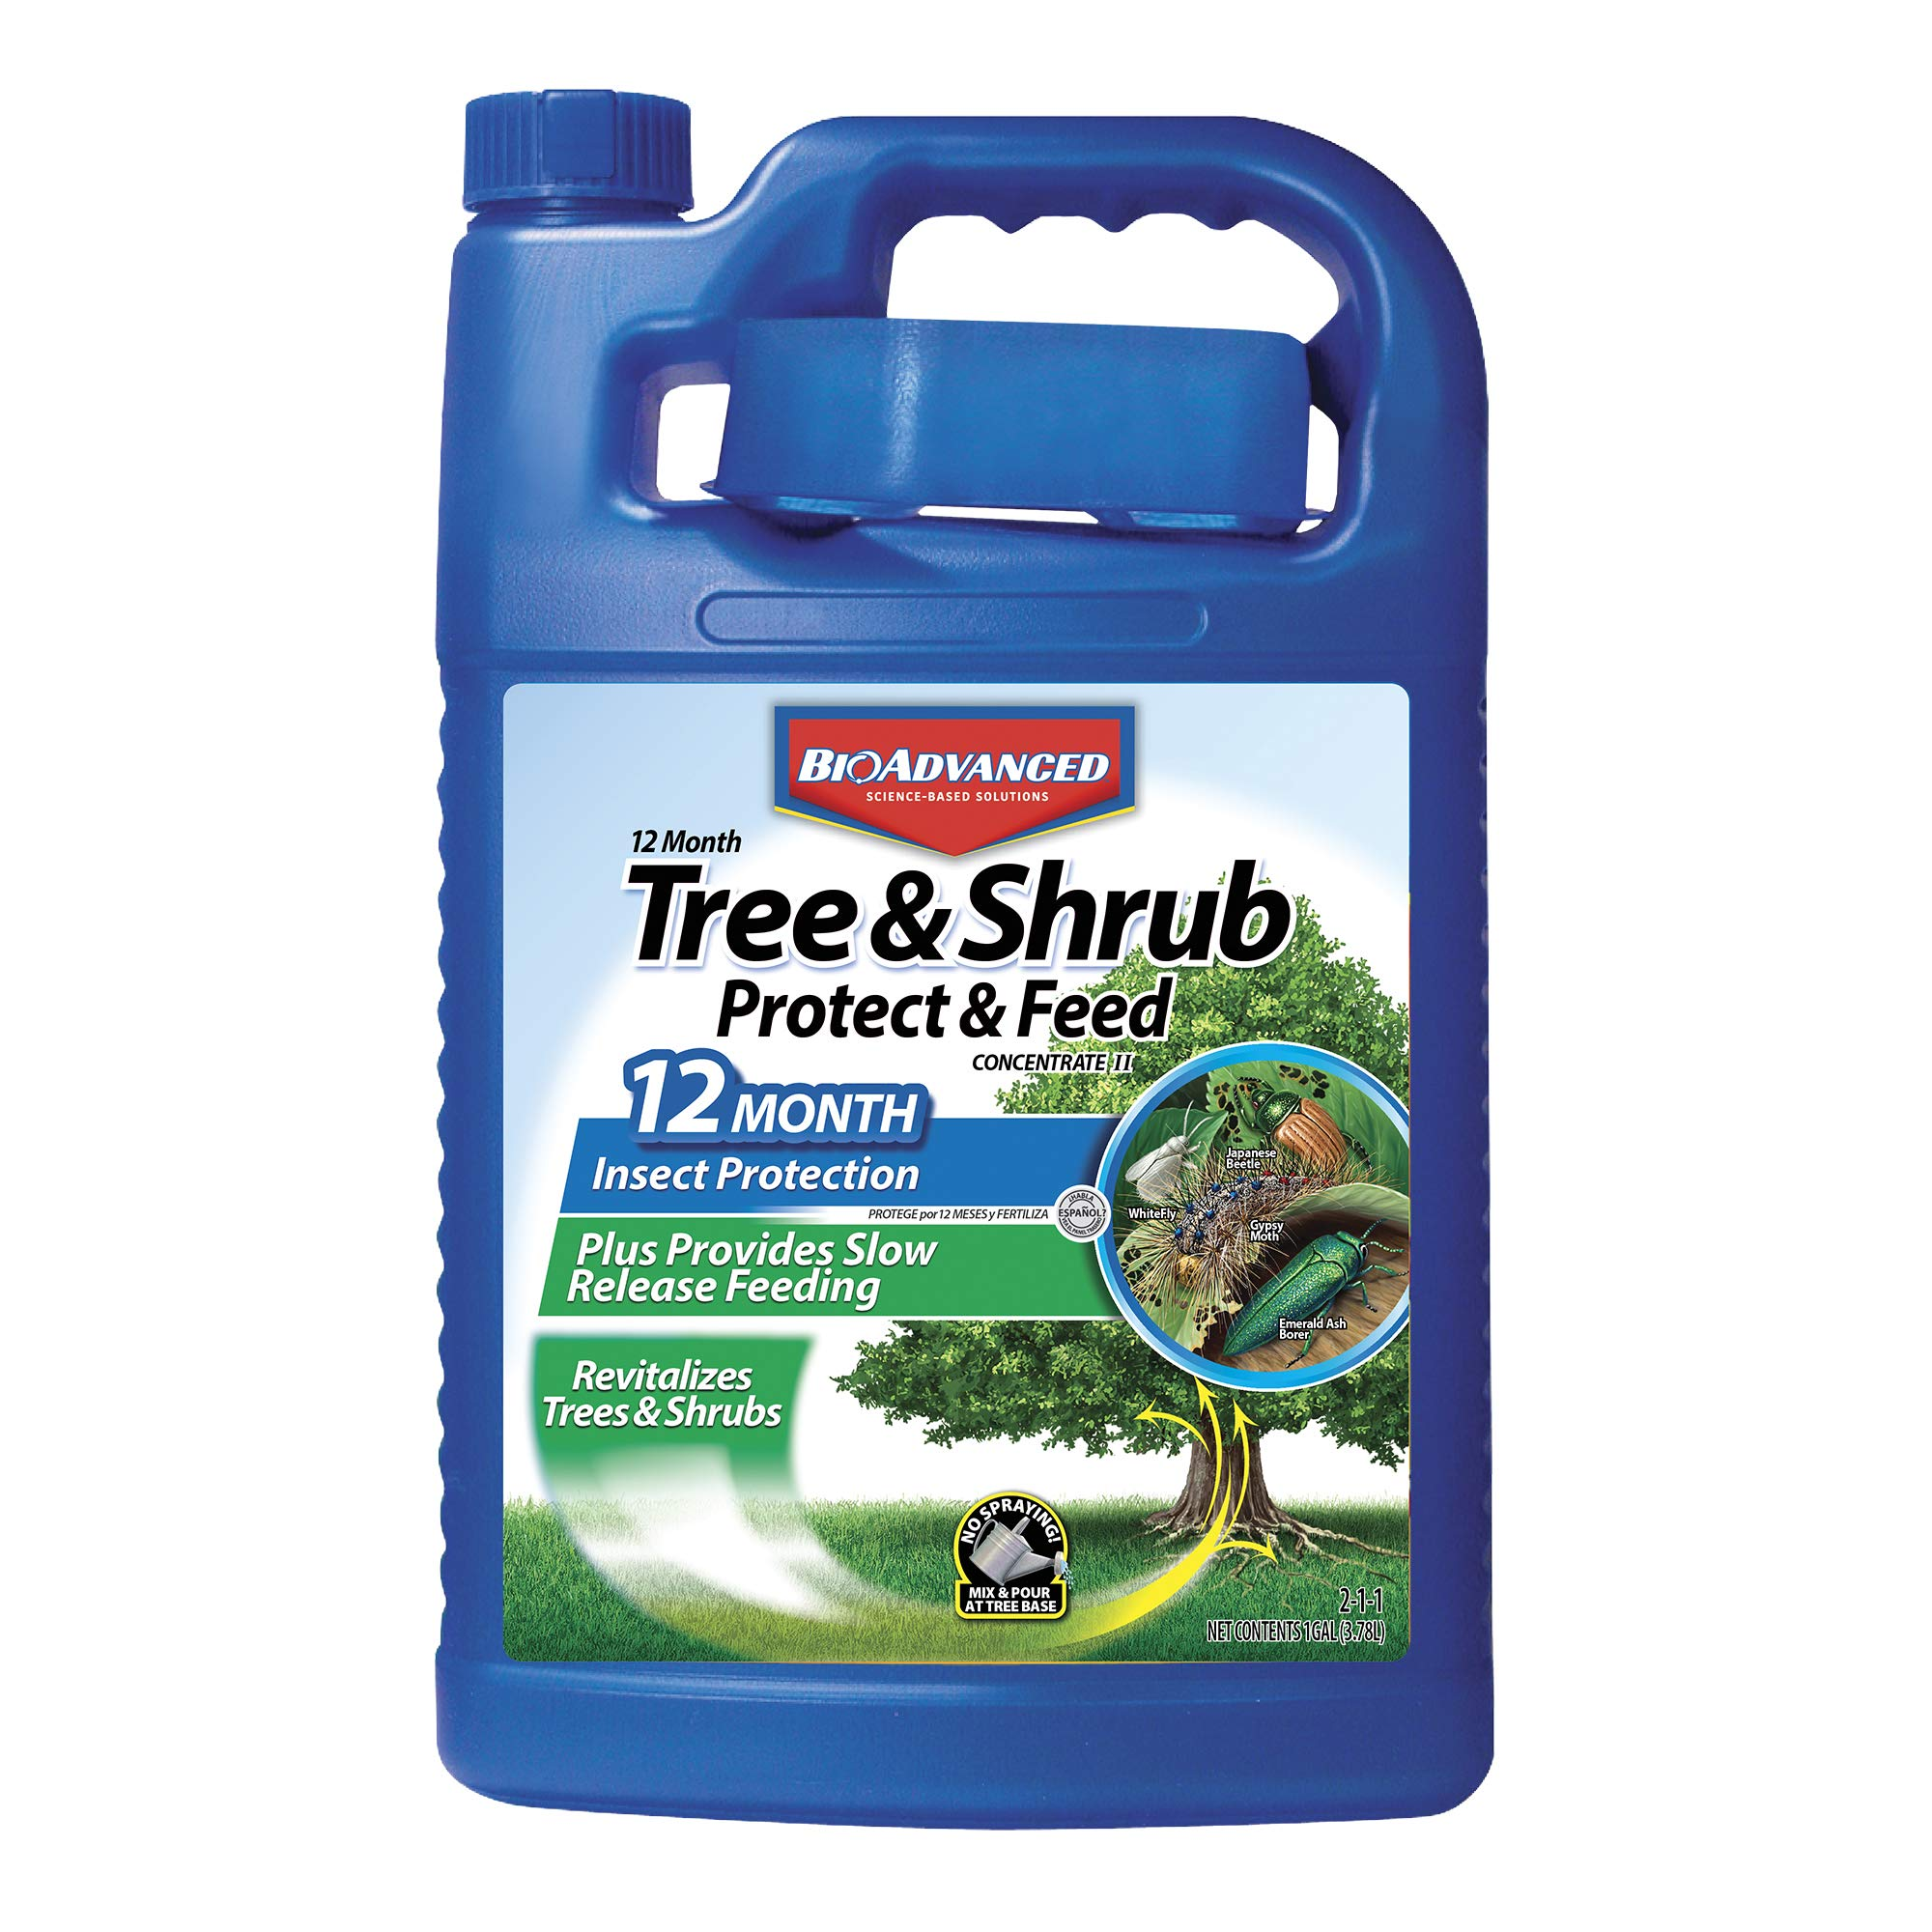 Bio Advanced 701615 12 Month Tree and Shrub Protect and Feed Concentrate, 1-Gallon by BioAdvanced